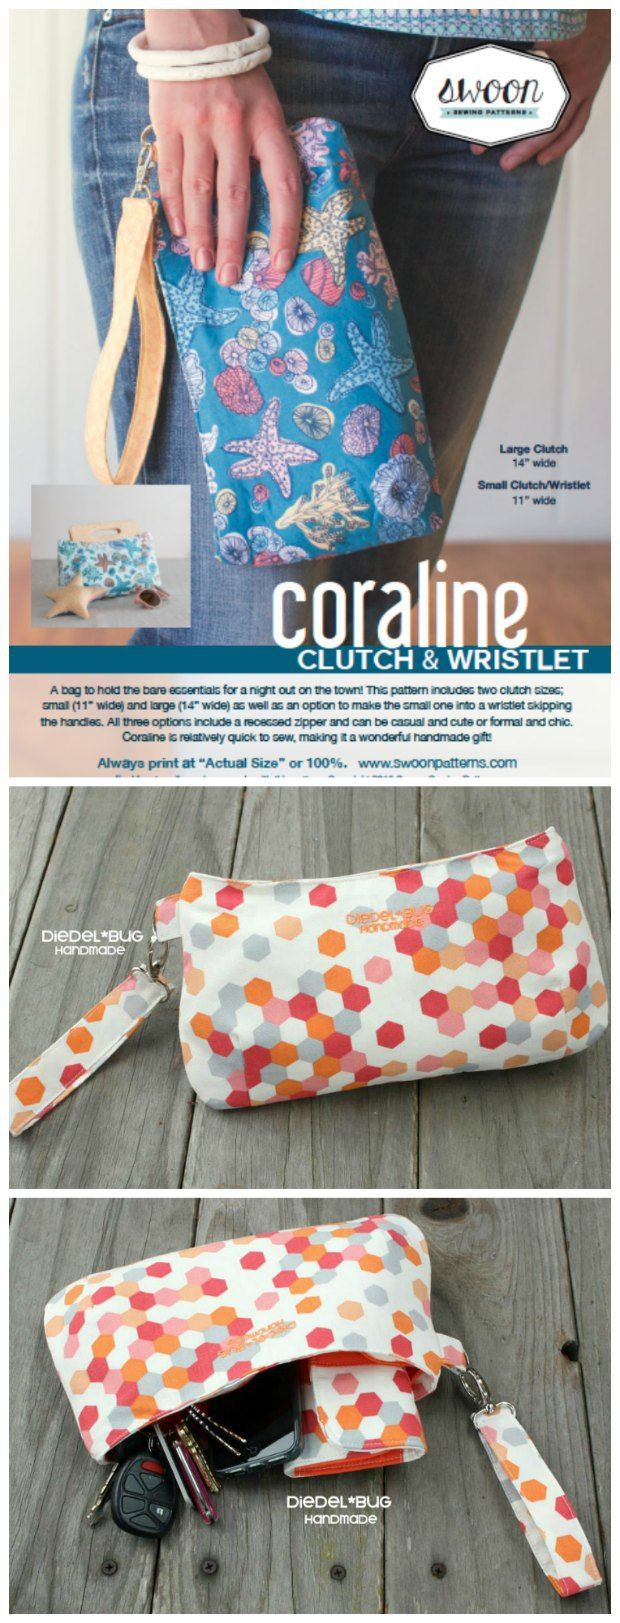 Full video tutorial on how to sew the Coraline Clutch Bag. This has a slightly curved inset top zipper and I thought it was going to be hard. Not with this video - it's really easy!